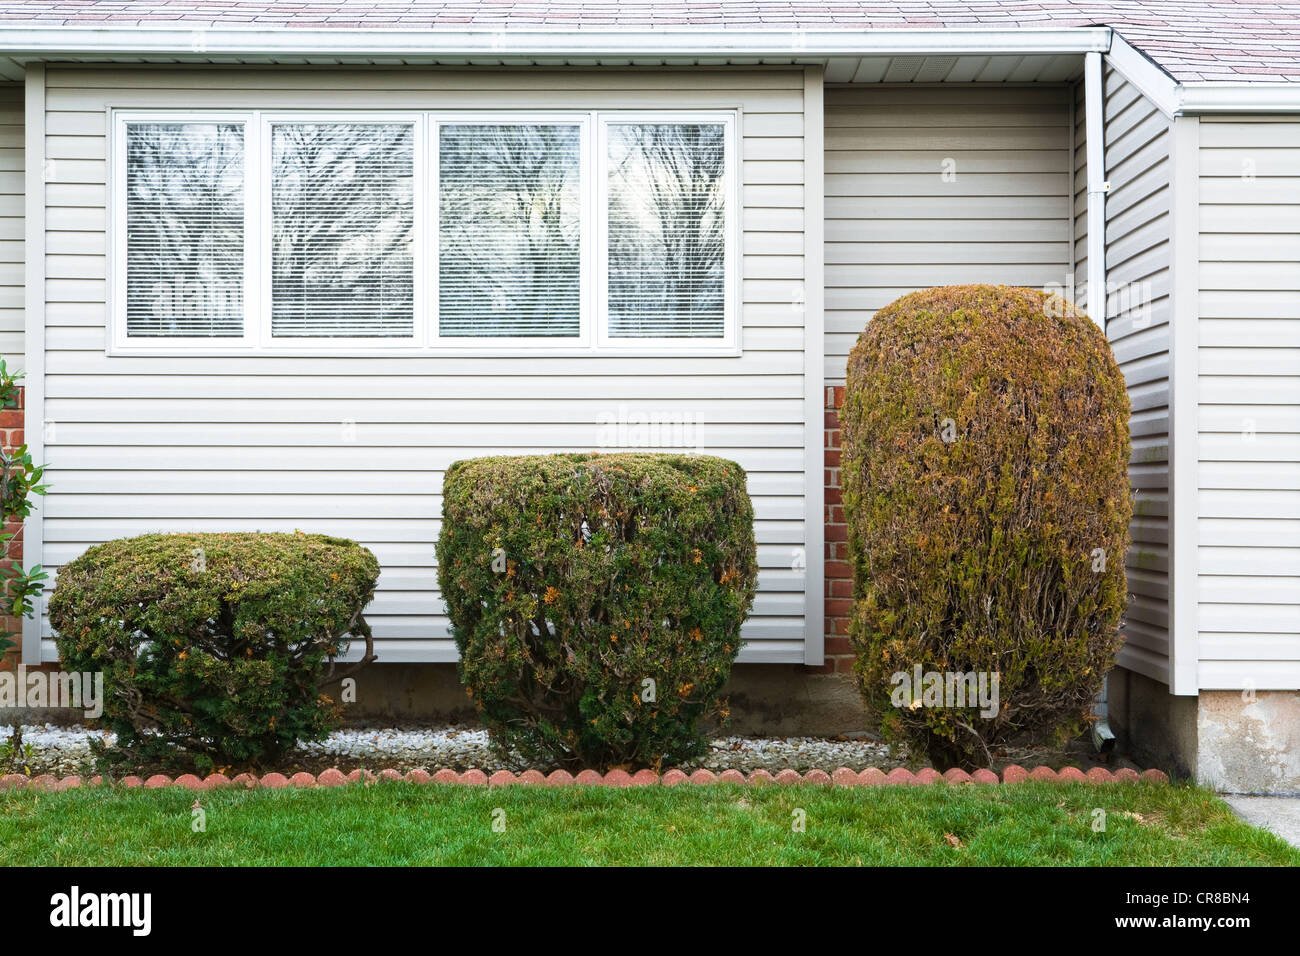 Trimmed hedges of different sizes - Stock Image